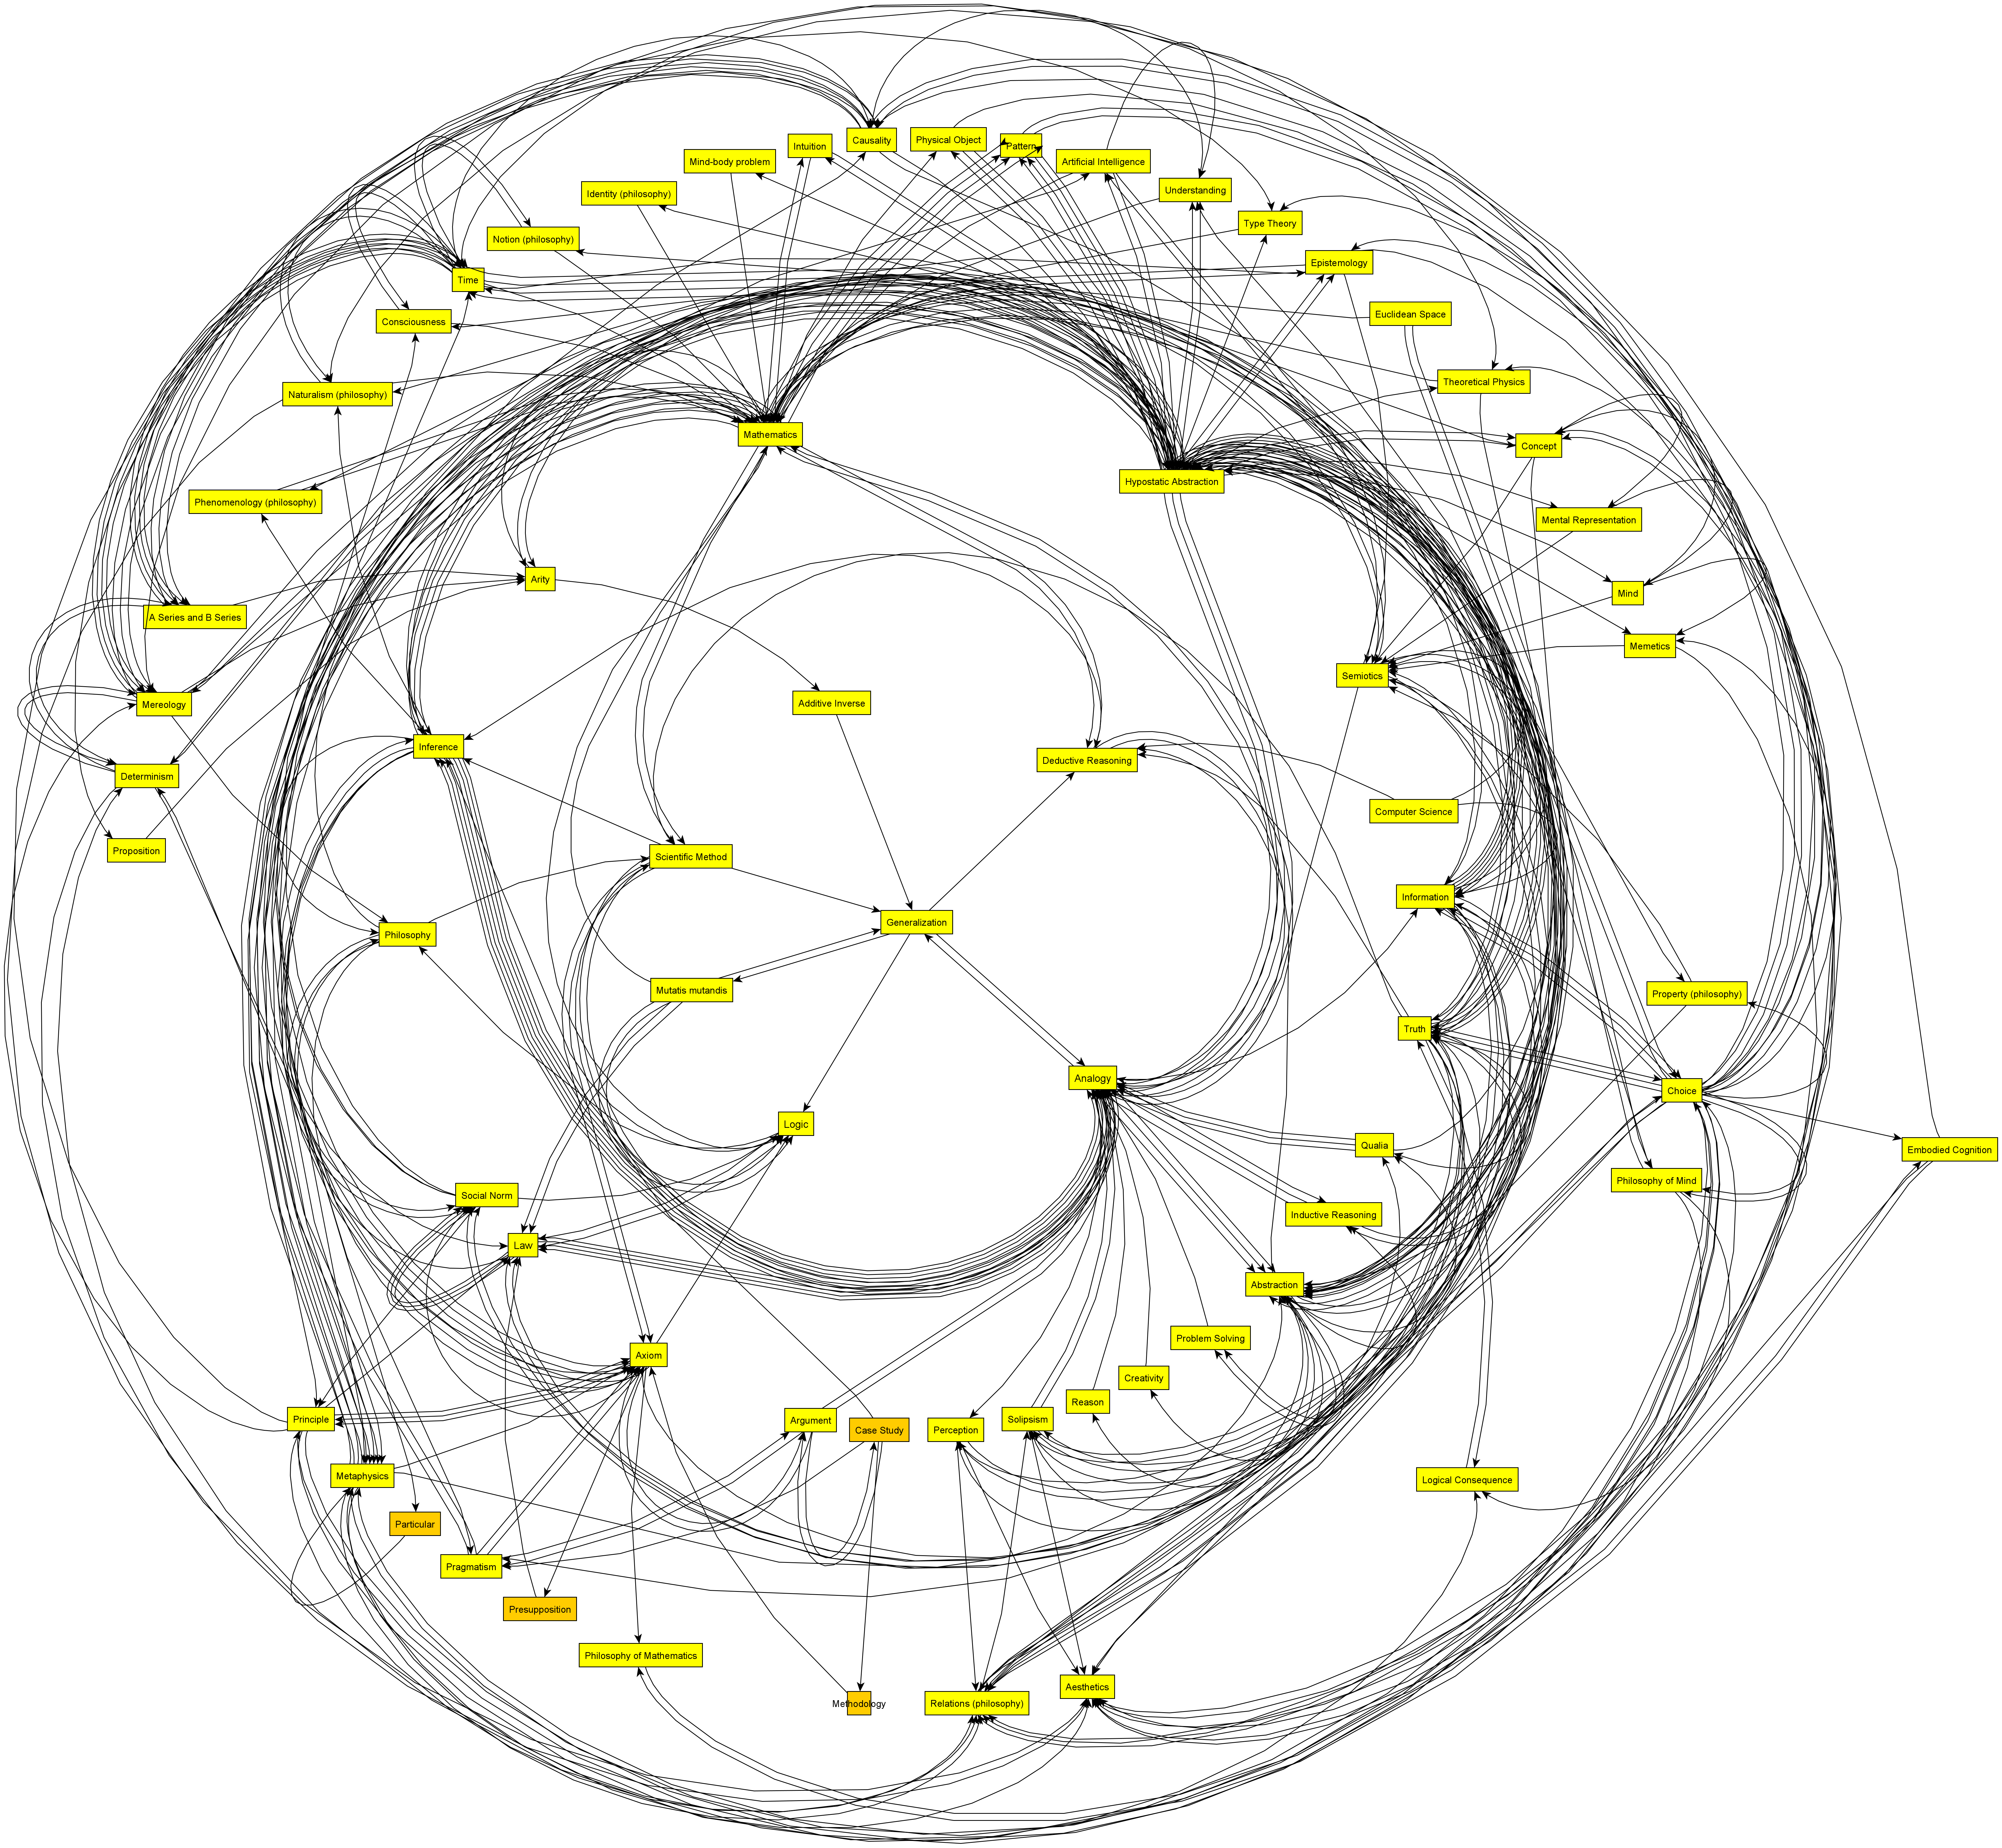 GENERALIZATION_principles-of-a-domain-by-wikipedia-six-degrees_radial3_grouped_hierarchy4